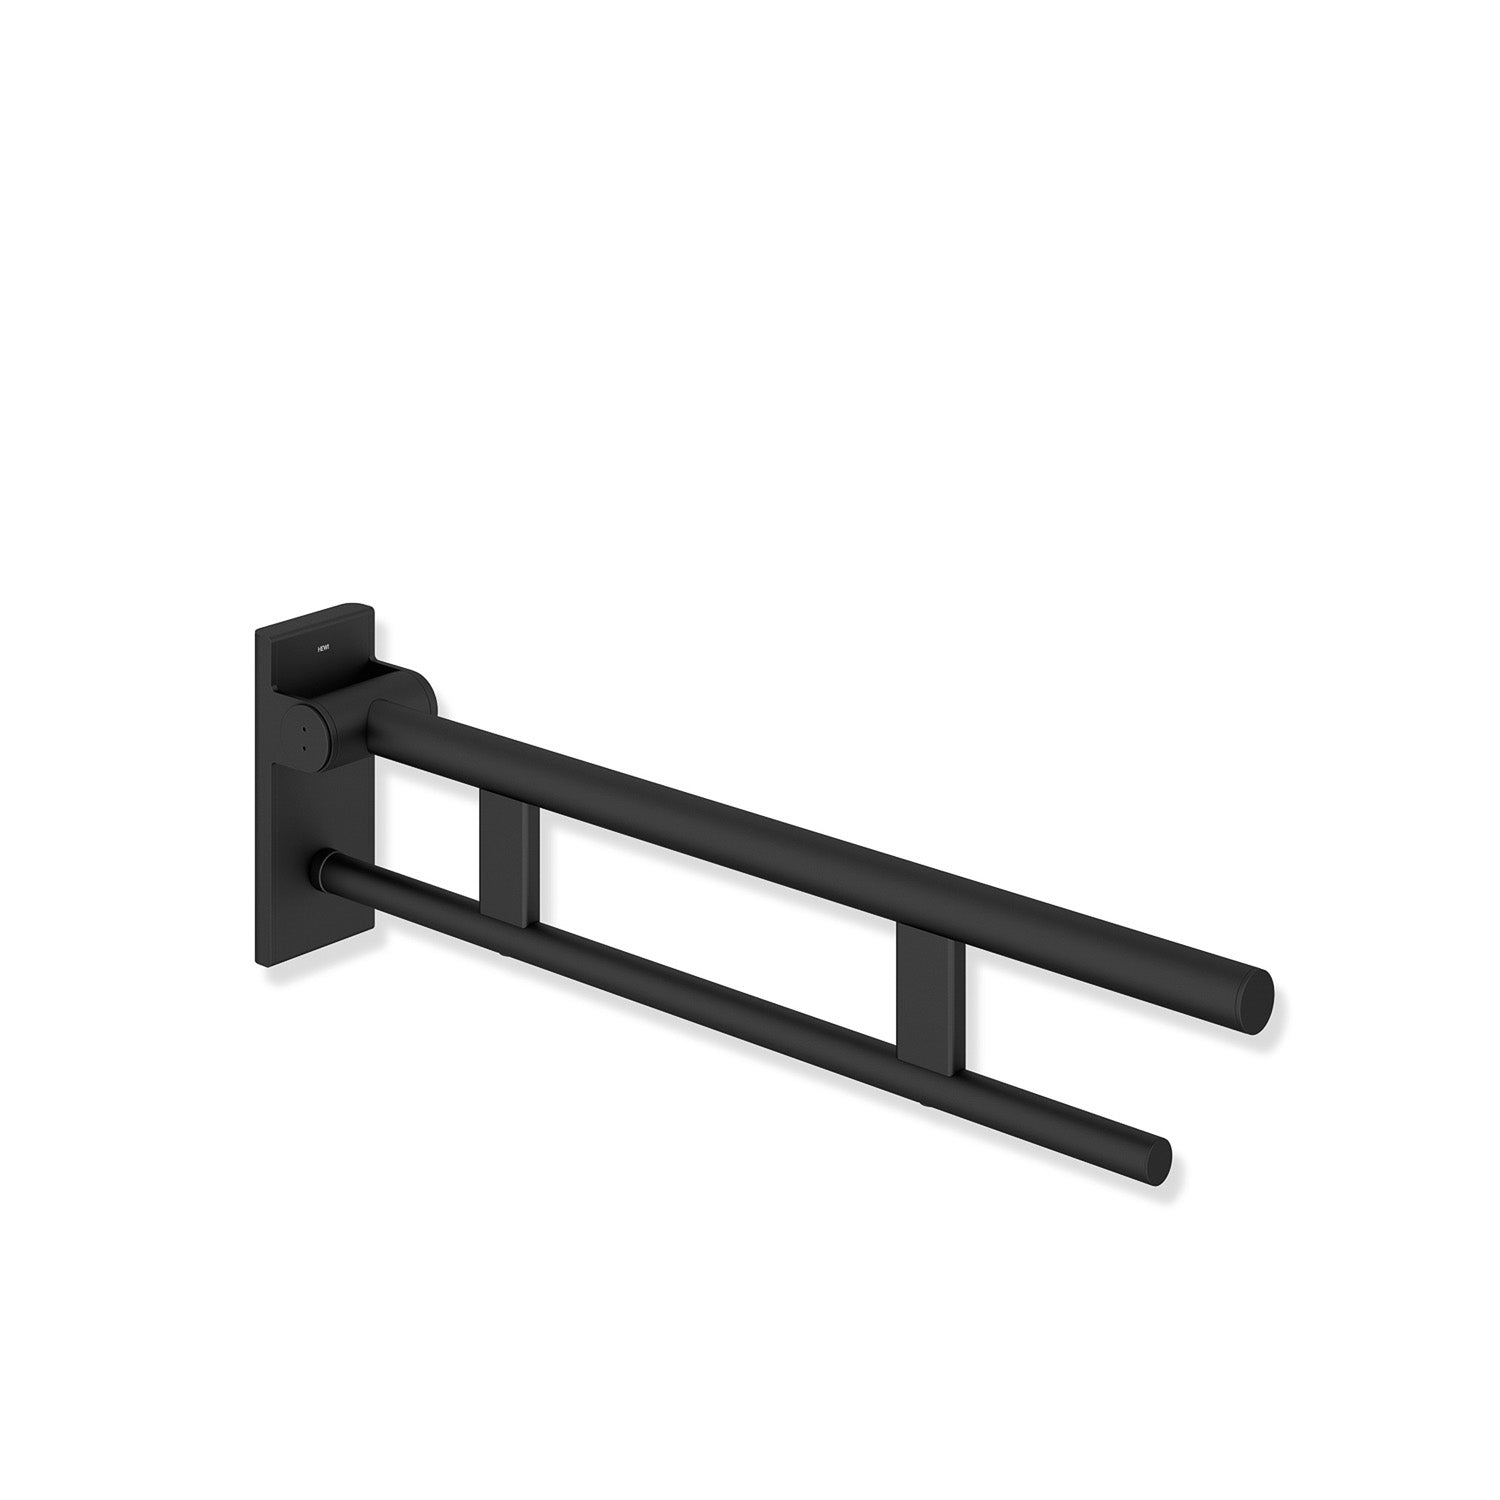 700mm Freestyle Removable Hinged Grab Rail Set with a matt black finish on a white background